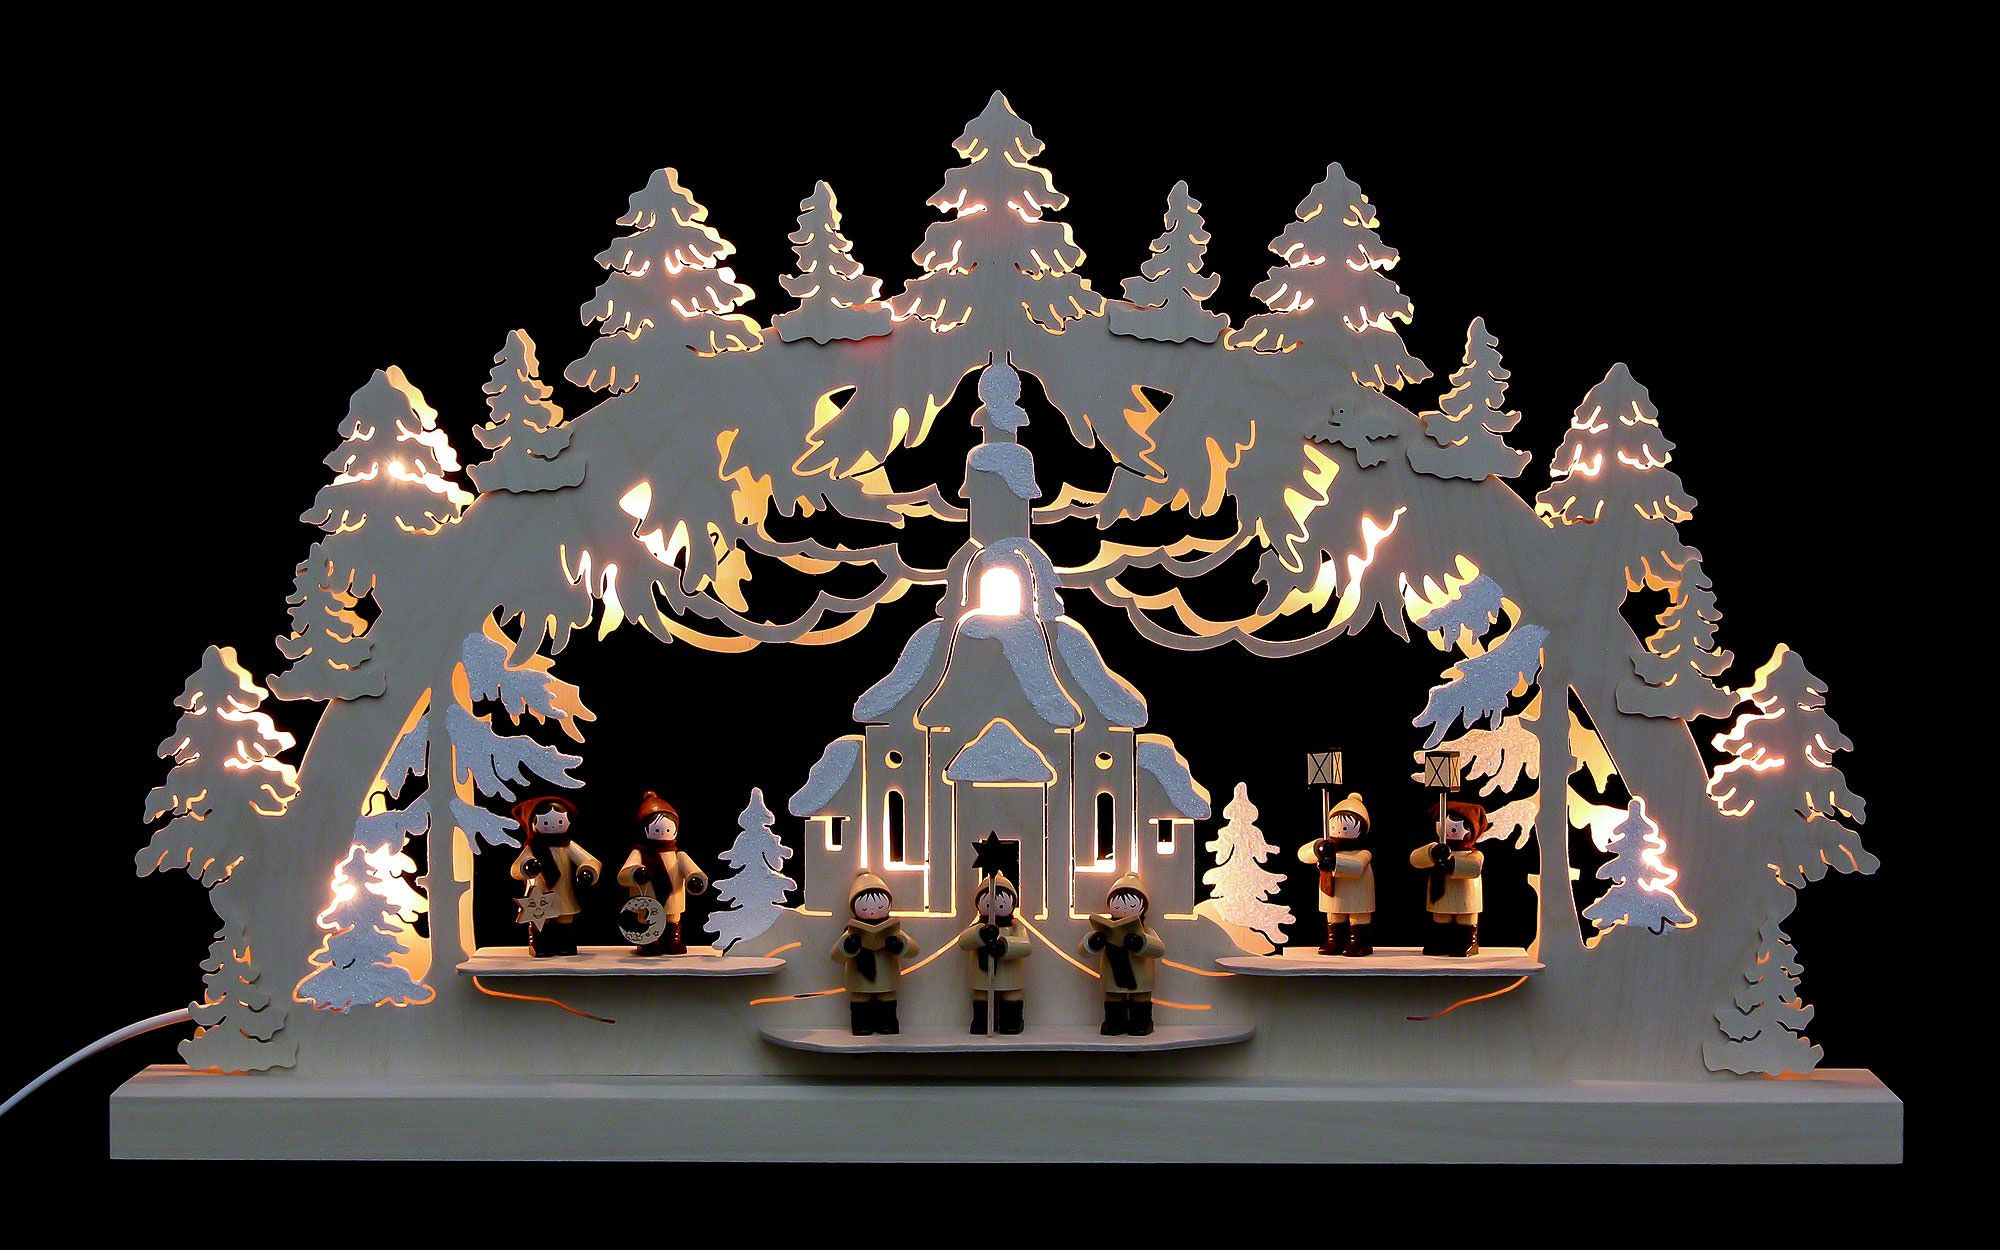 3d Double Arch Seiffen Church 62a 37a 5 5 Cm 24a 14a 2in By Michael Maœller Double Arches Christmas Arch Candle Types